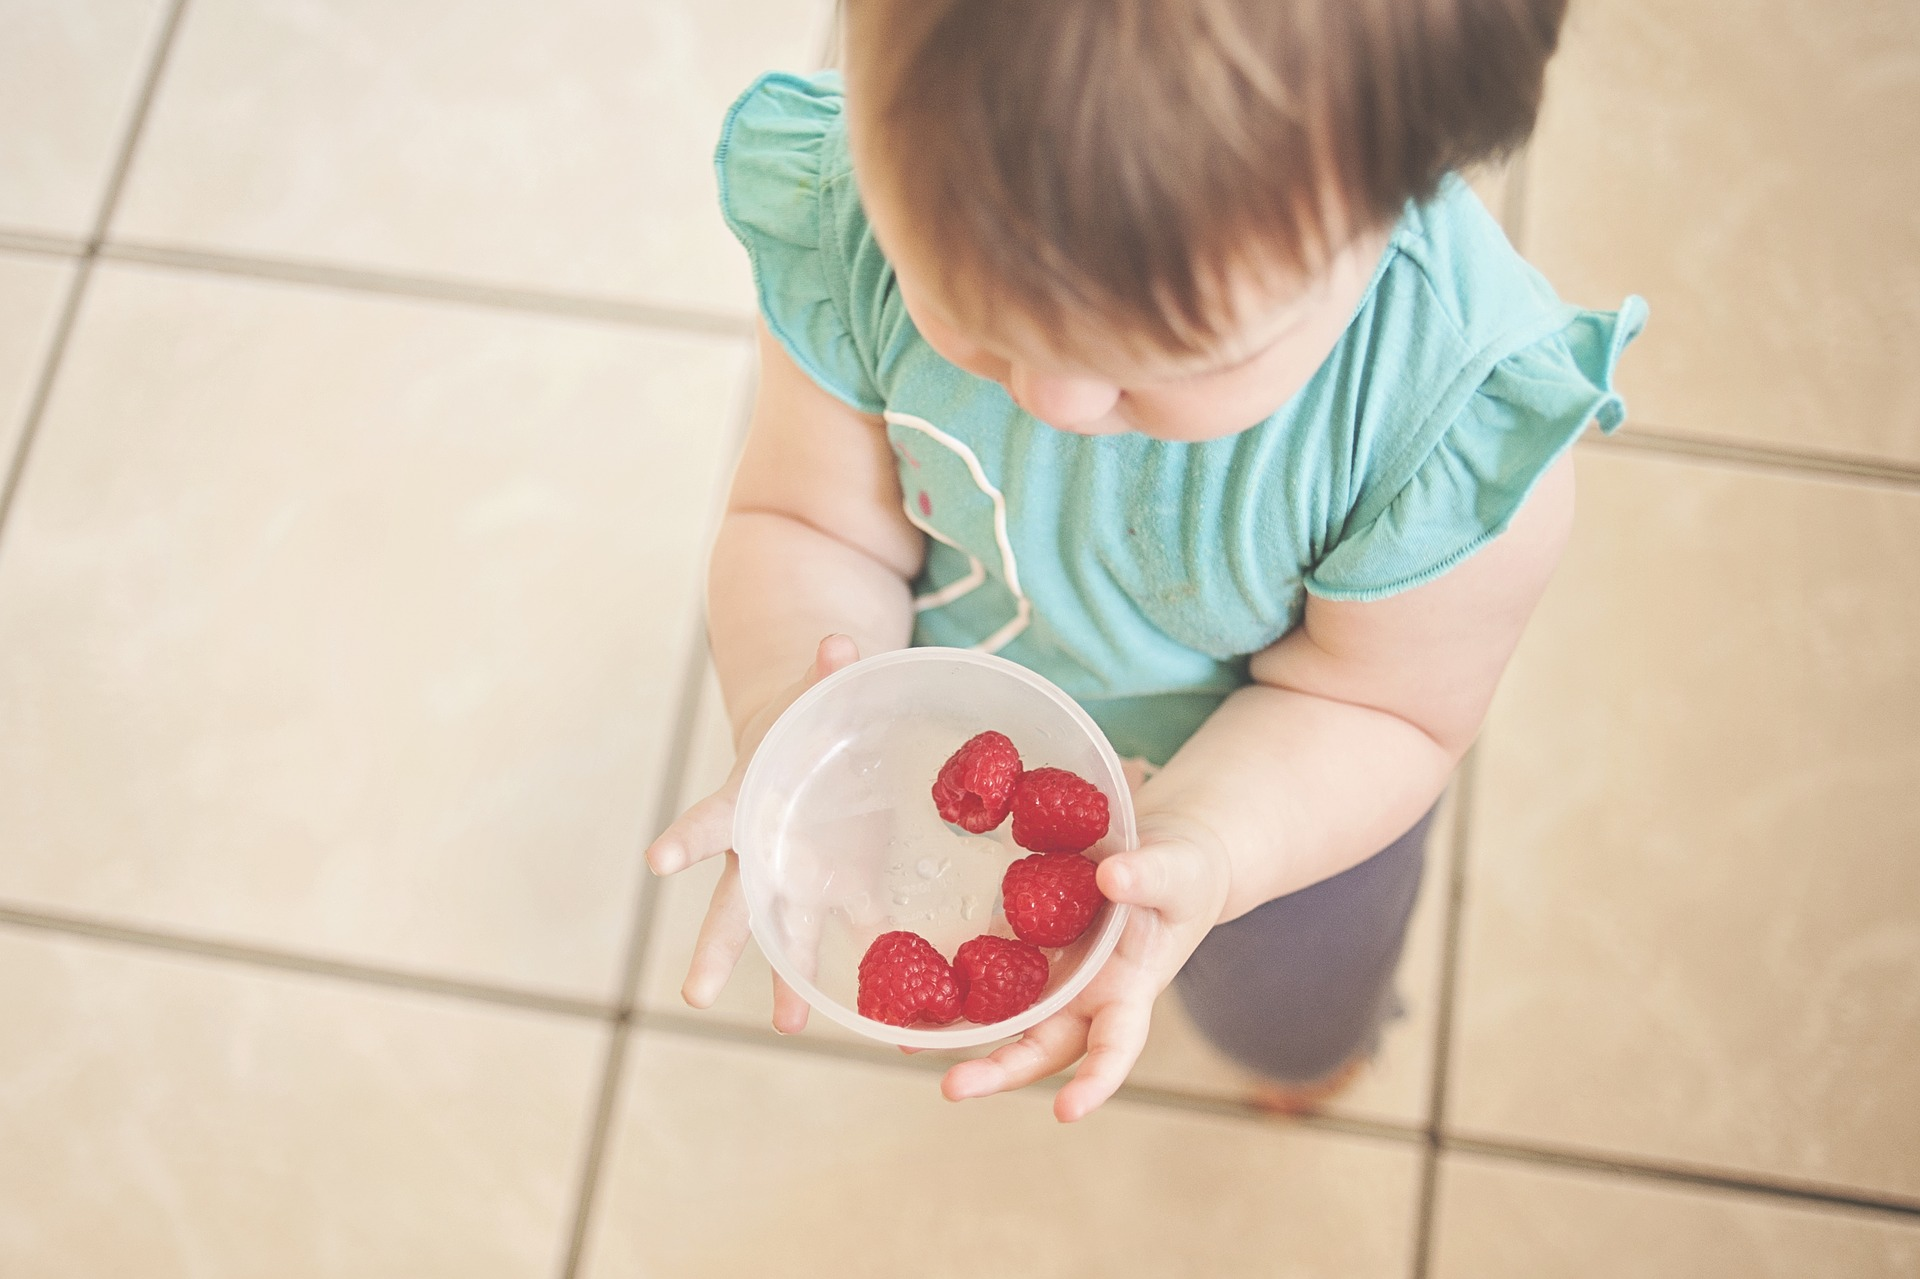 Clean Your Plate: 9 Tips for Helping Kids Develop Healthy Eating Habits